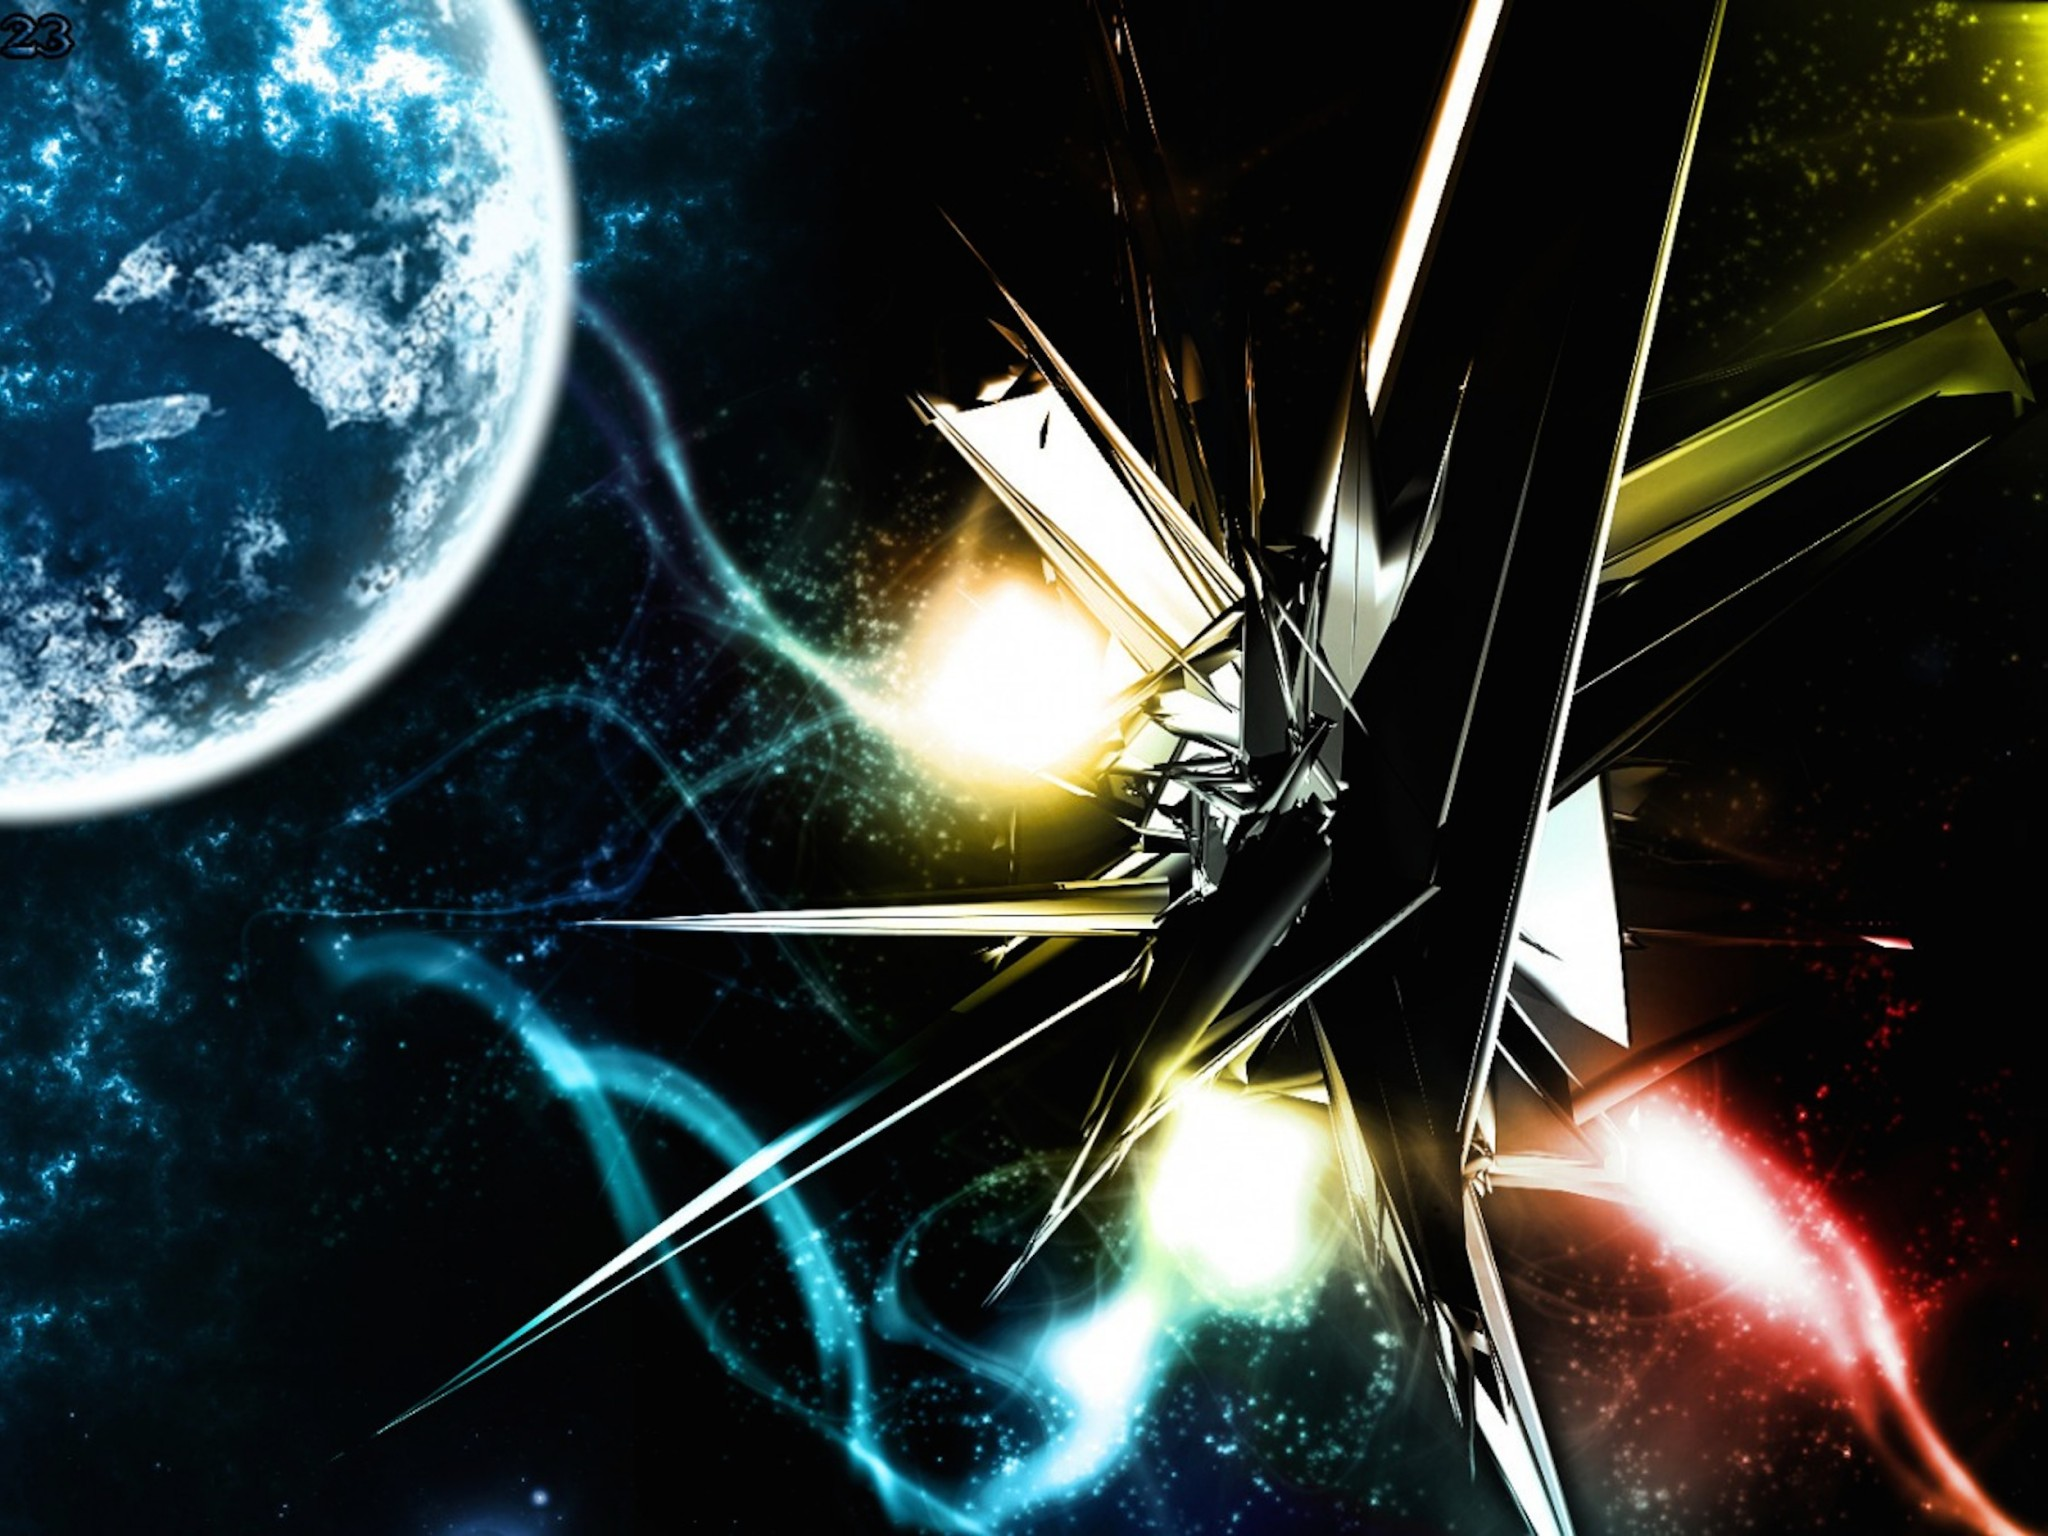 3d Space Background Wallpaper: Free High Res Wallpapers